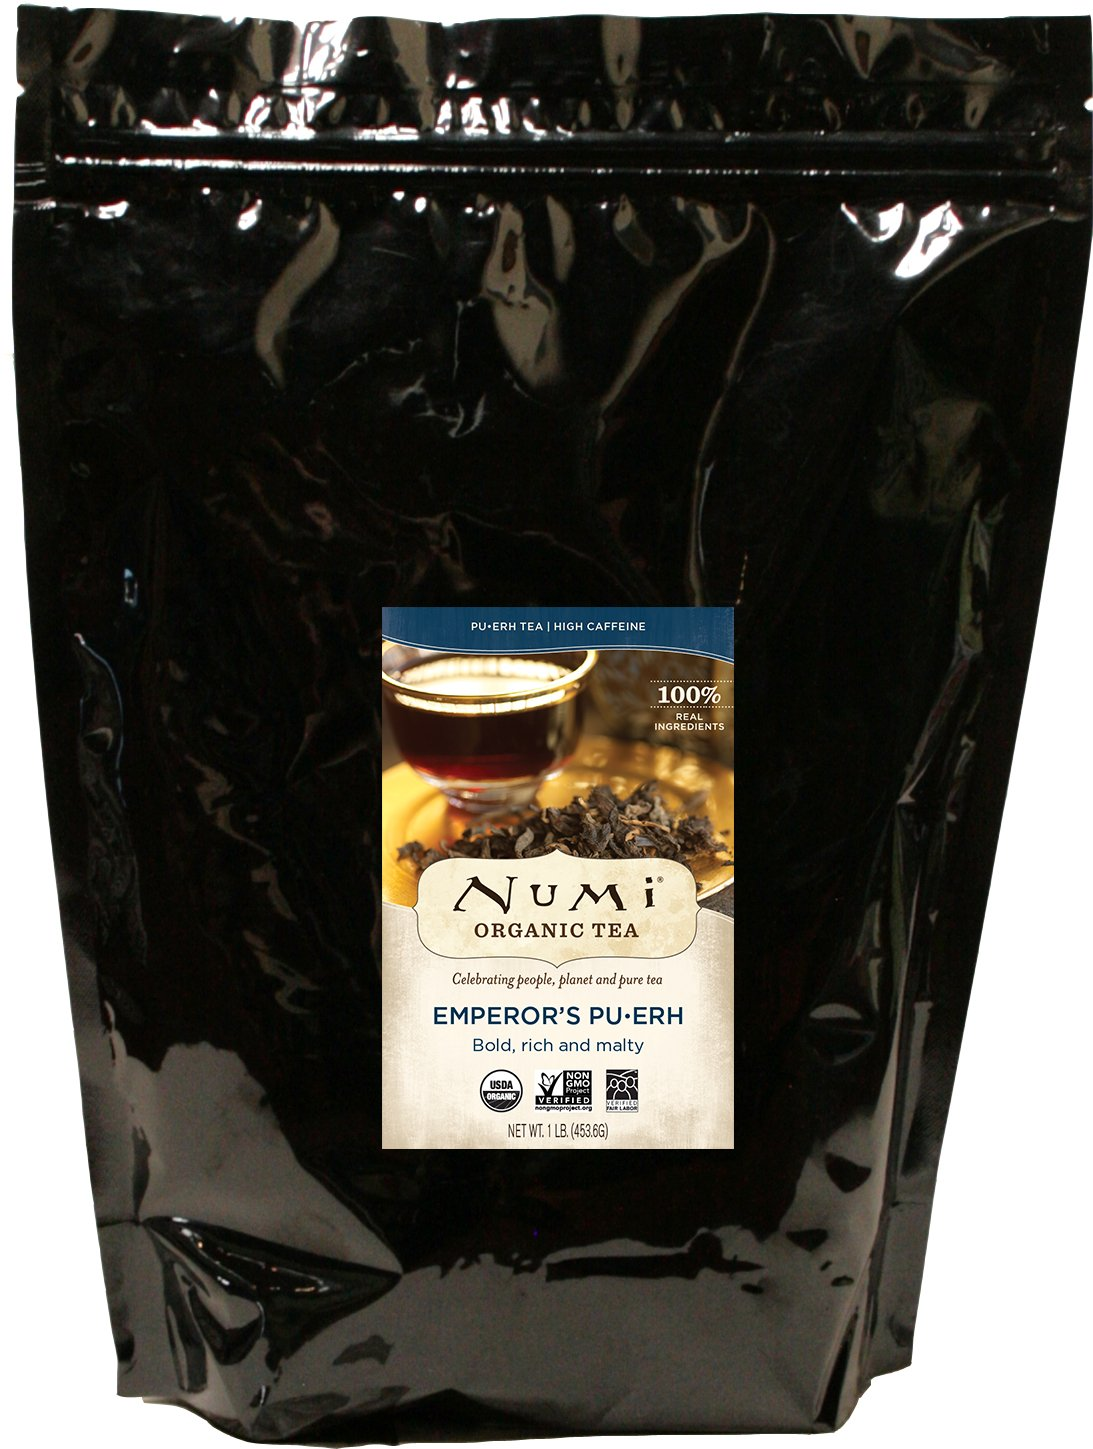 Numi Organic Tea Emperor's Pu-erh, 16 Ounce Pouch, Loose Leaf Black Tea (Packaging May Vary) by Numi